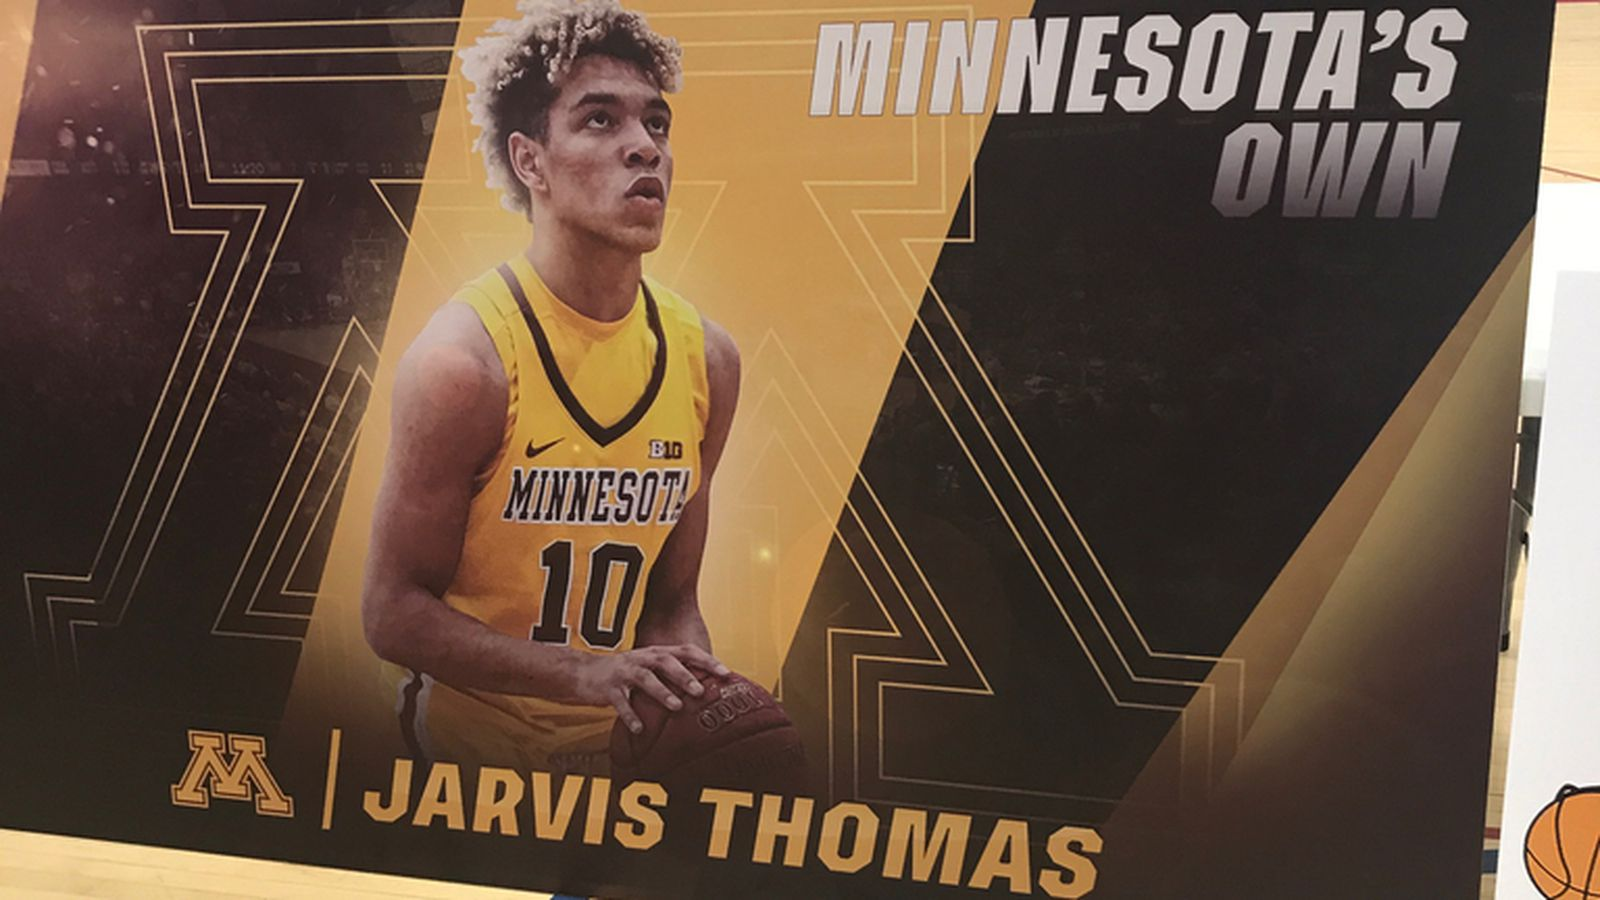 Jarvis Thomas releases cool and classy commitment video - The Daily Gopher